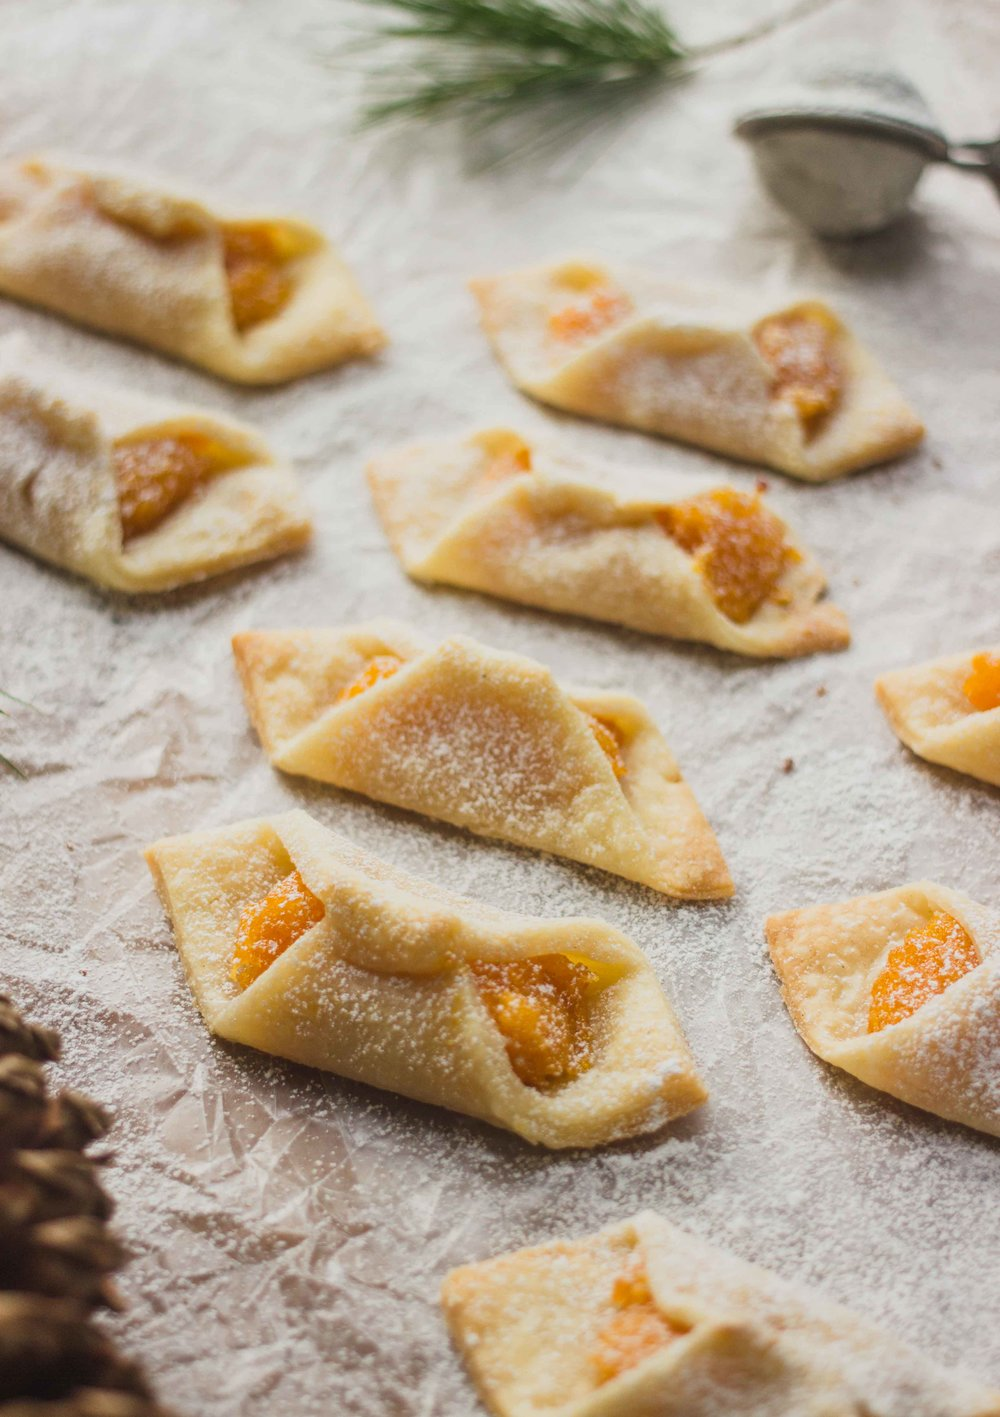 Polish Kolaczki Apricot Filled Cookies (Gluten Free) - The Well Essentials #poland #christmascookies #holidays